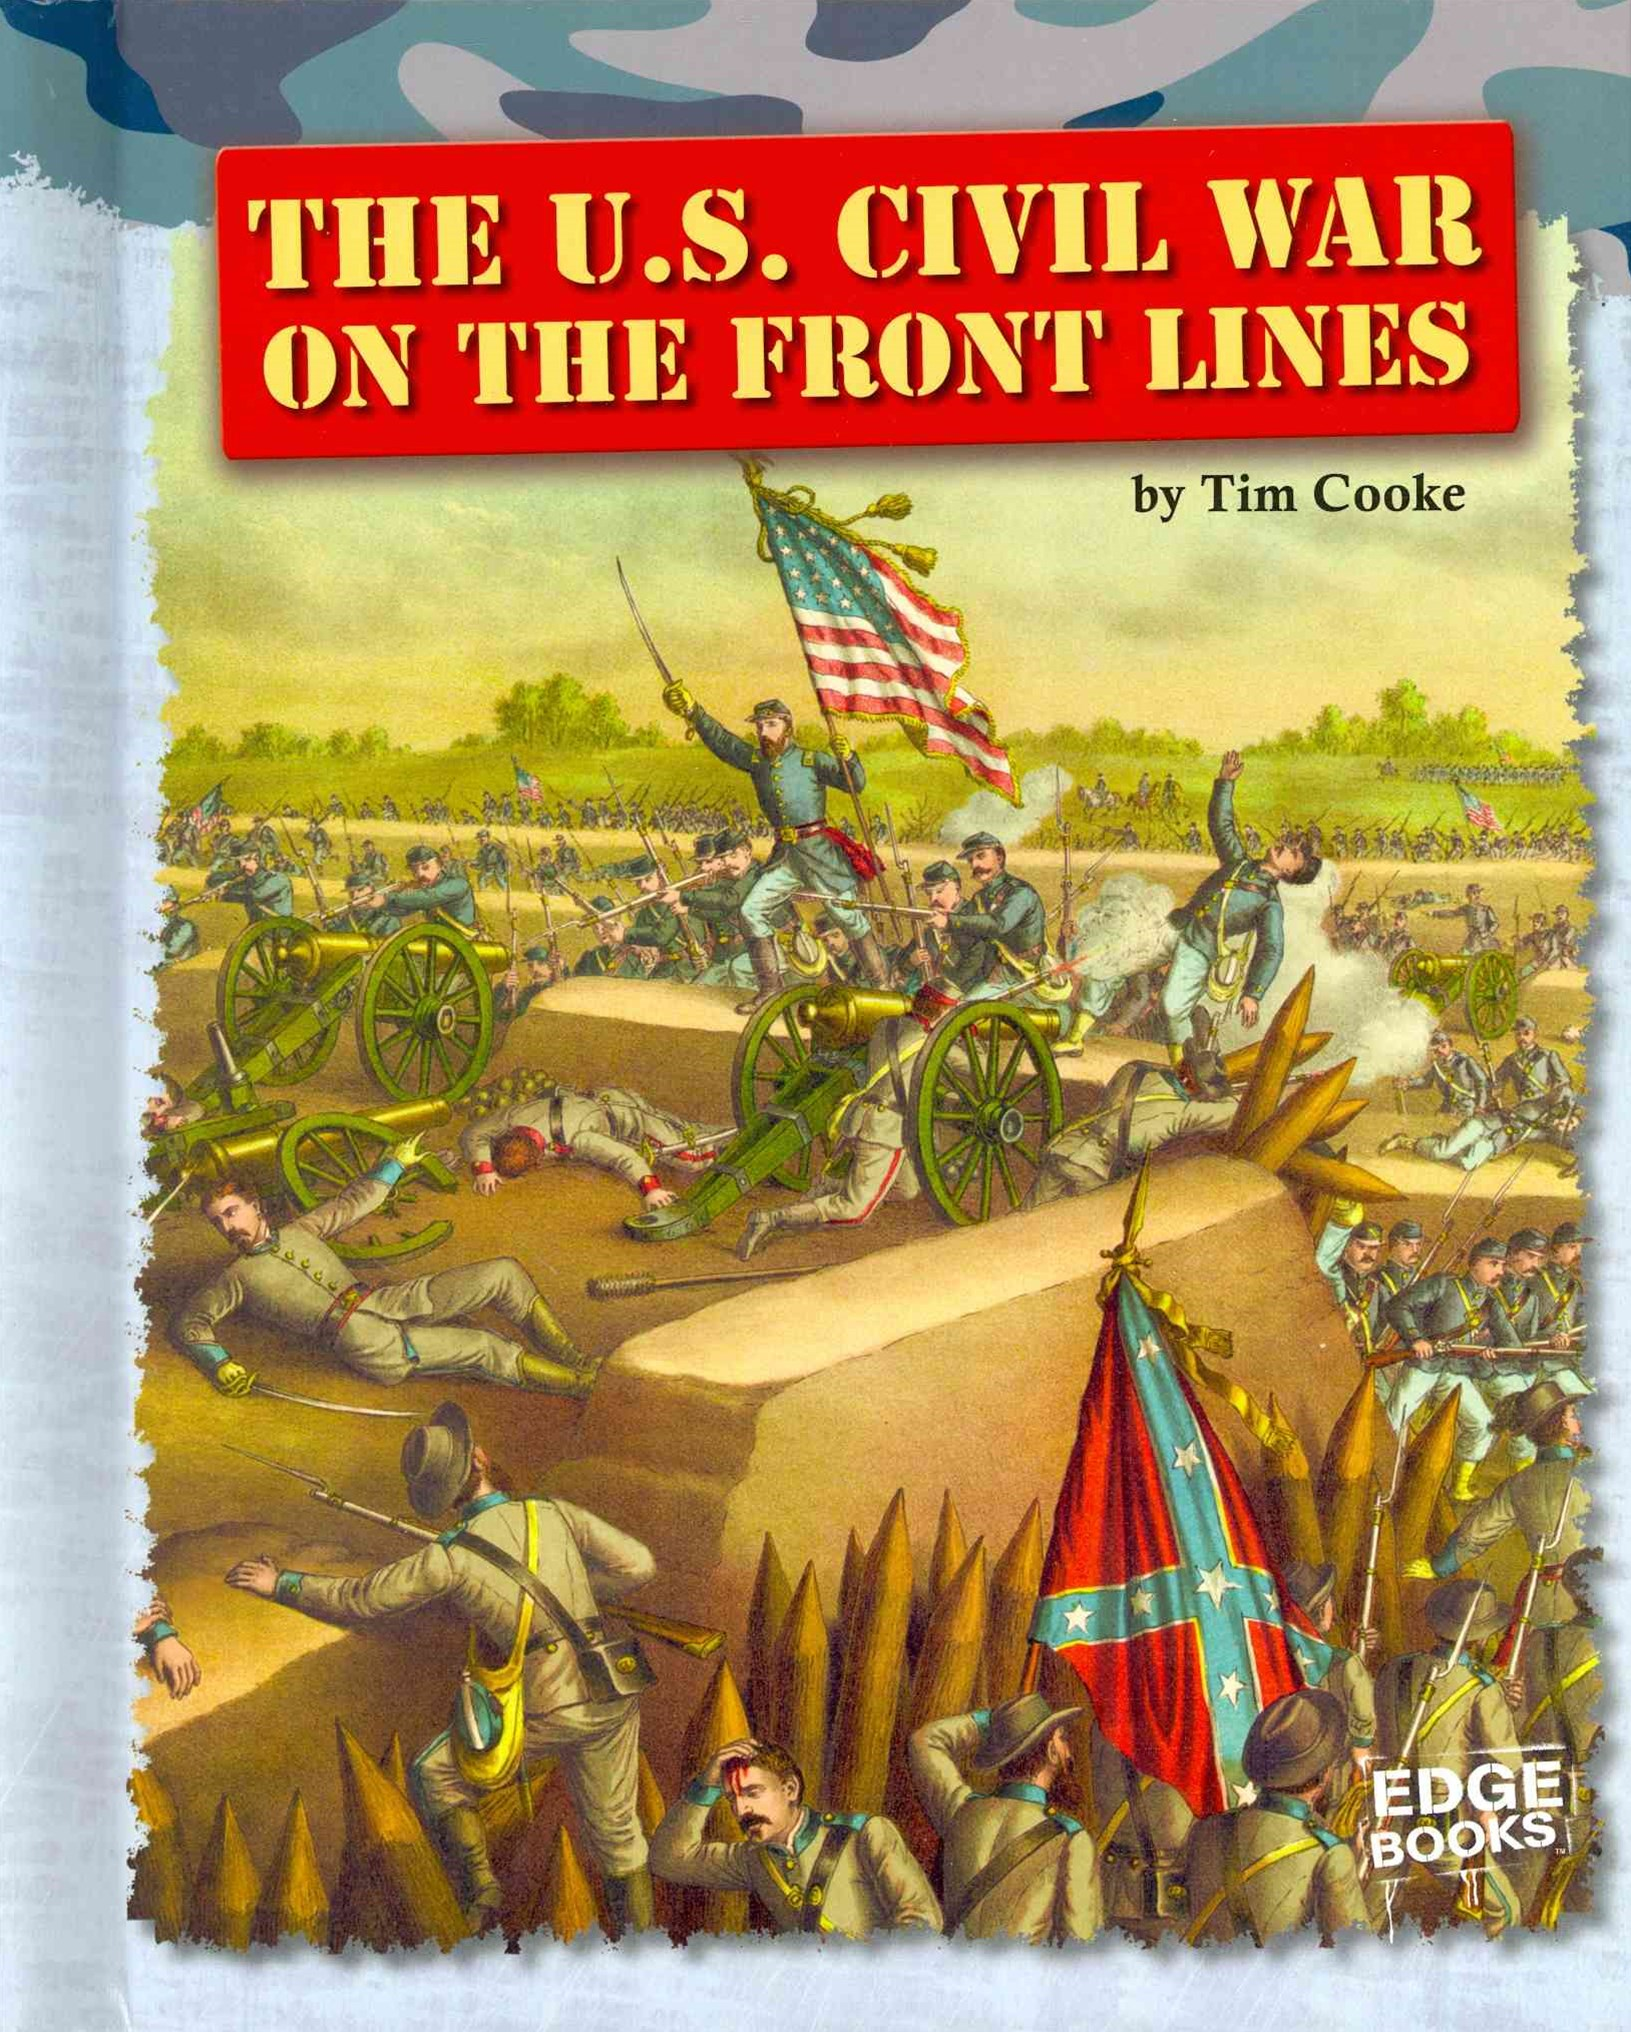 The U. S. Civil War on the Front Lines